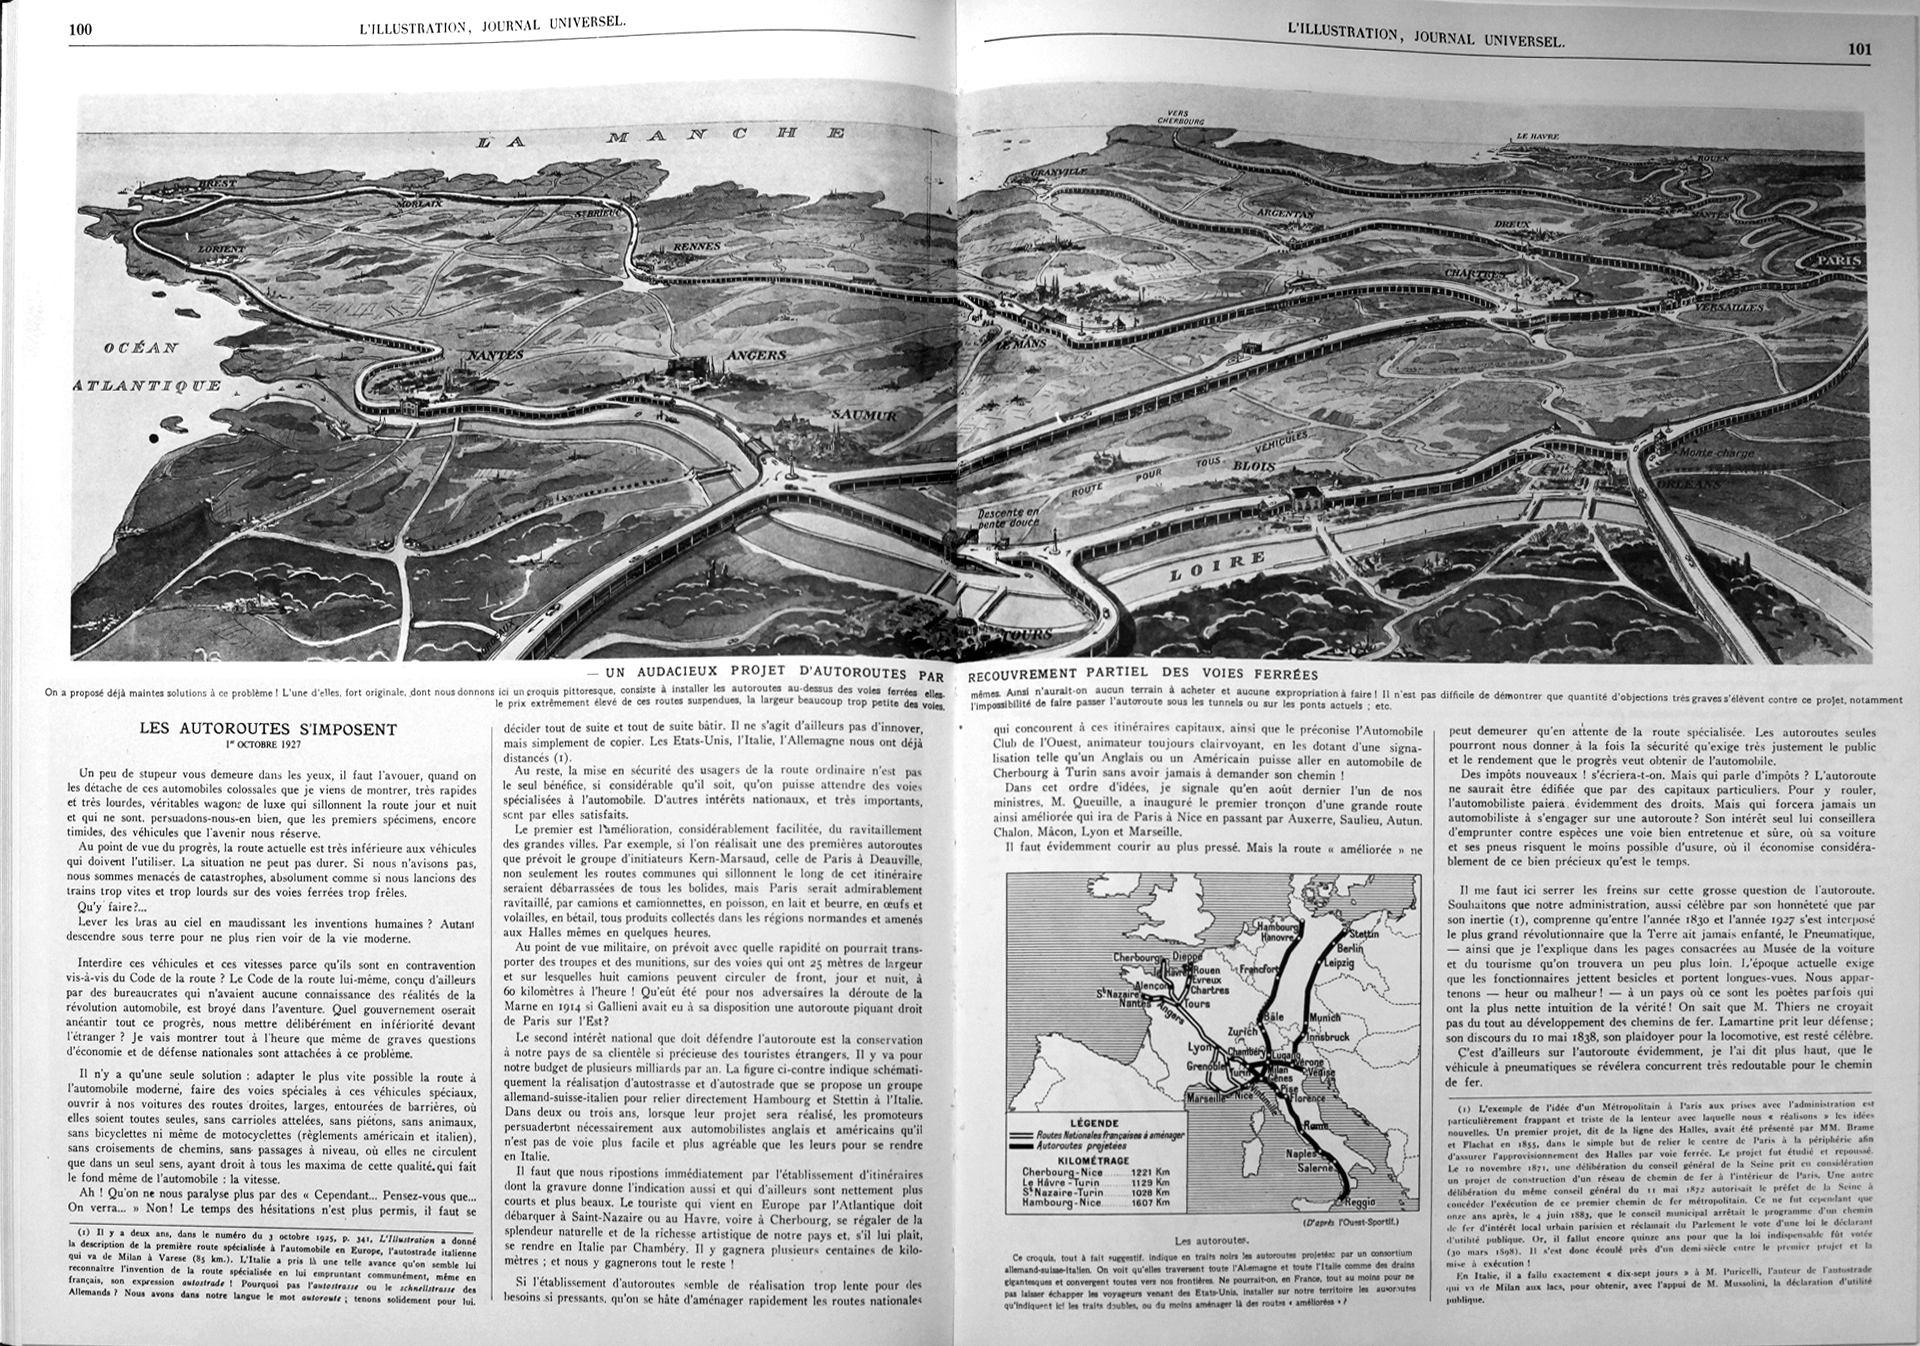 « Les autoroutes s'imposent », L'Illustration, octobre 1927, p. 100-101